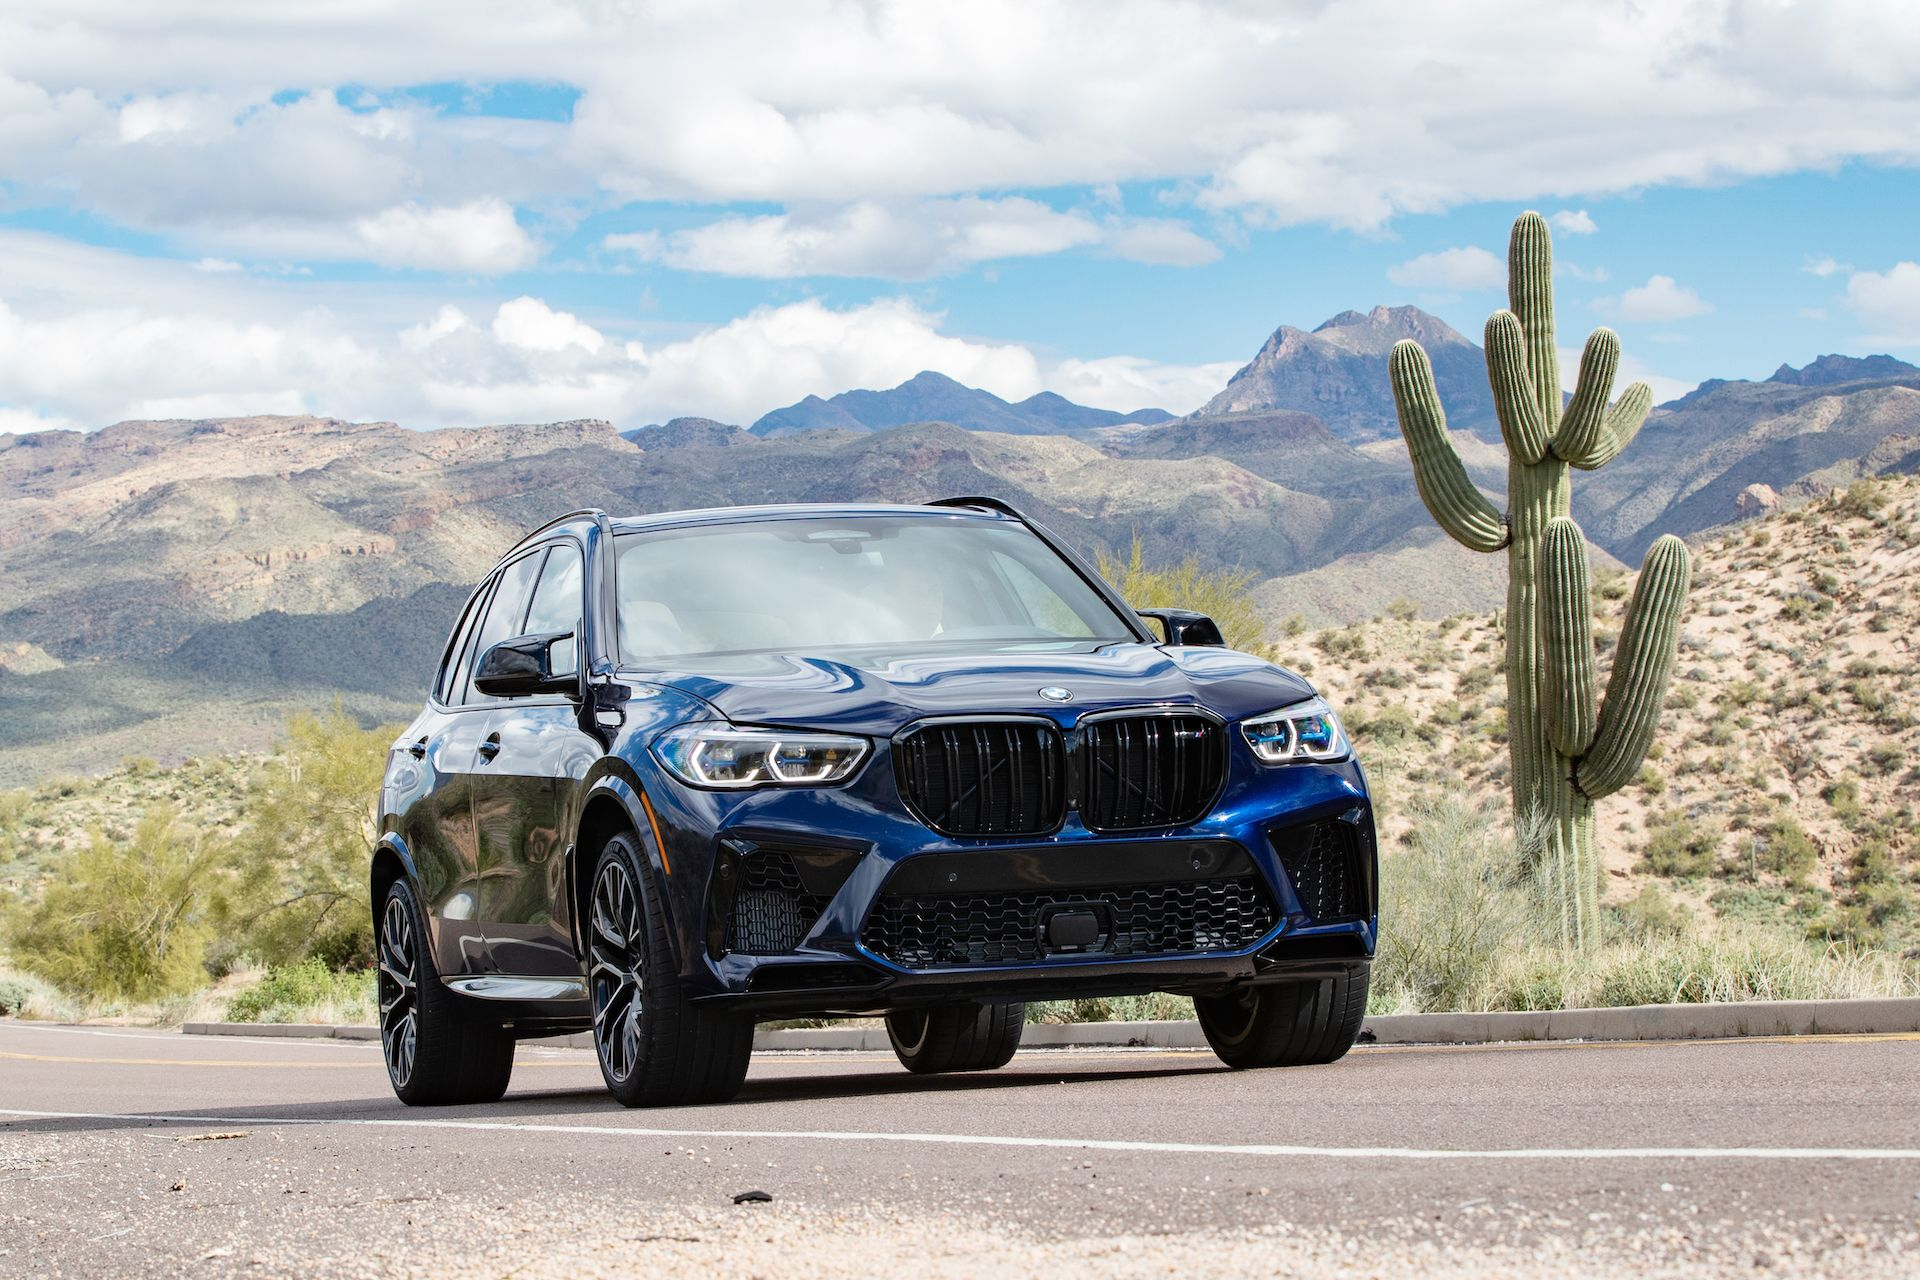 First Drive Review 2020 Bmw X5 M And X6 M Are Beasts In Search Of A Track In 2020 Bmw X5 M Bmw Bmw X5